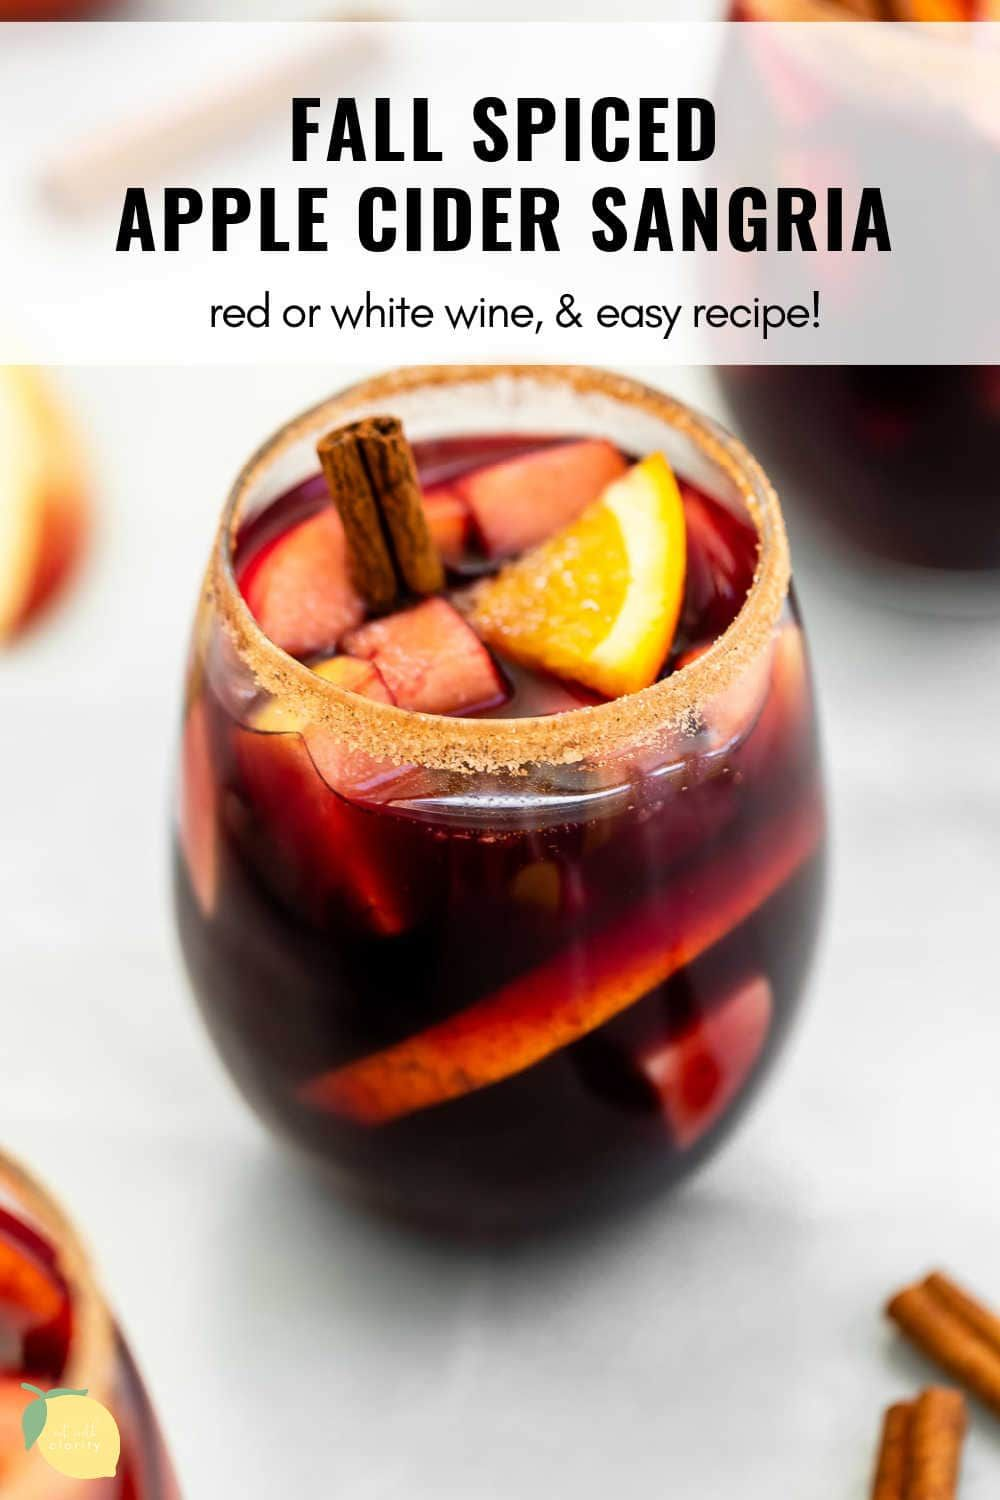 Fall Spiced Apple Cider Sangria Eat With Clarity Cocktails Recipe In 2020 Apple Cider Sangria Fall Sangria Recipes Cider Sangria